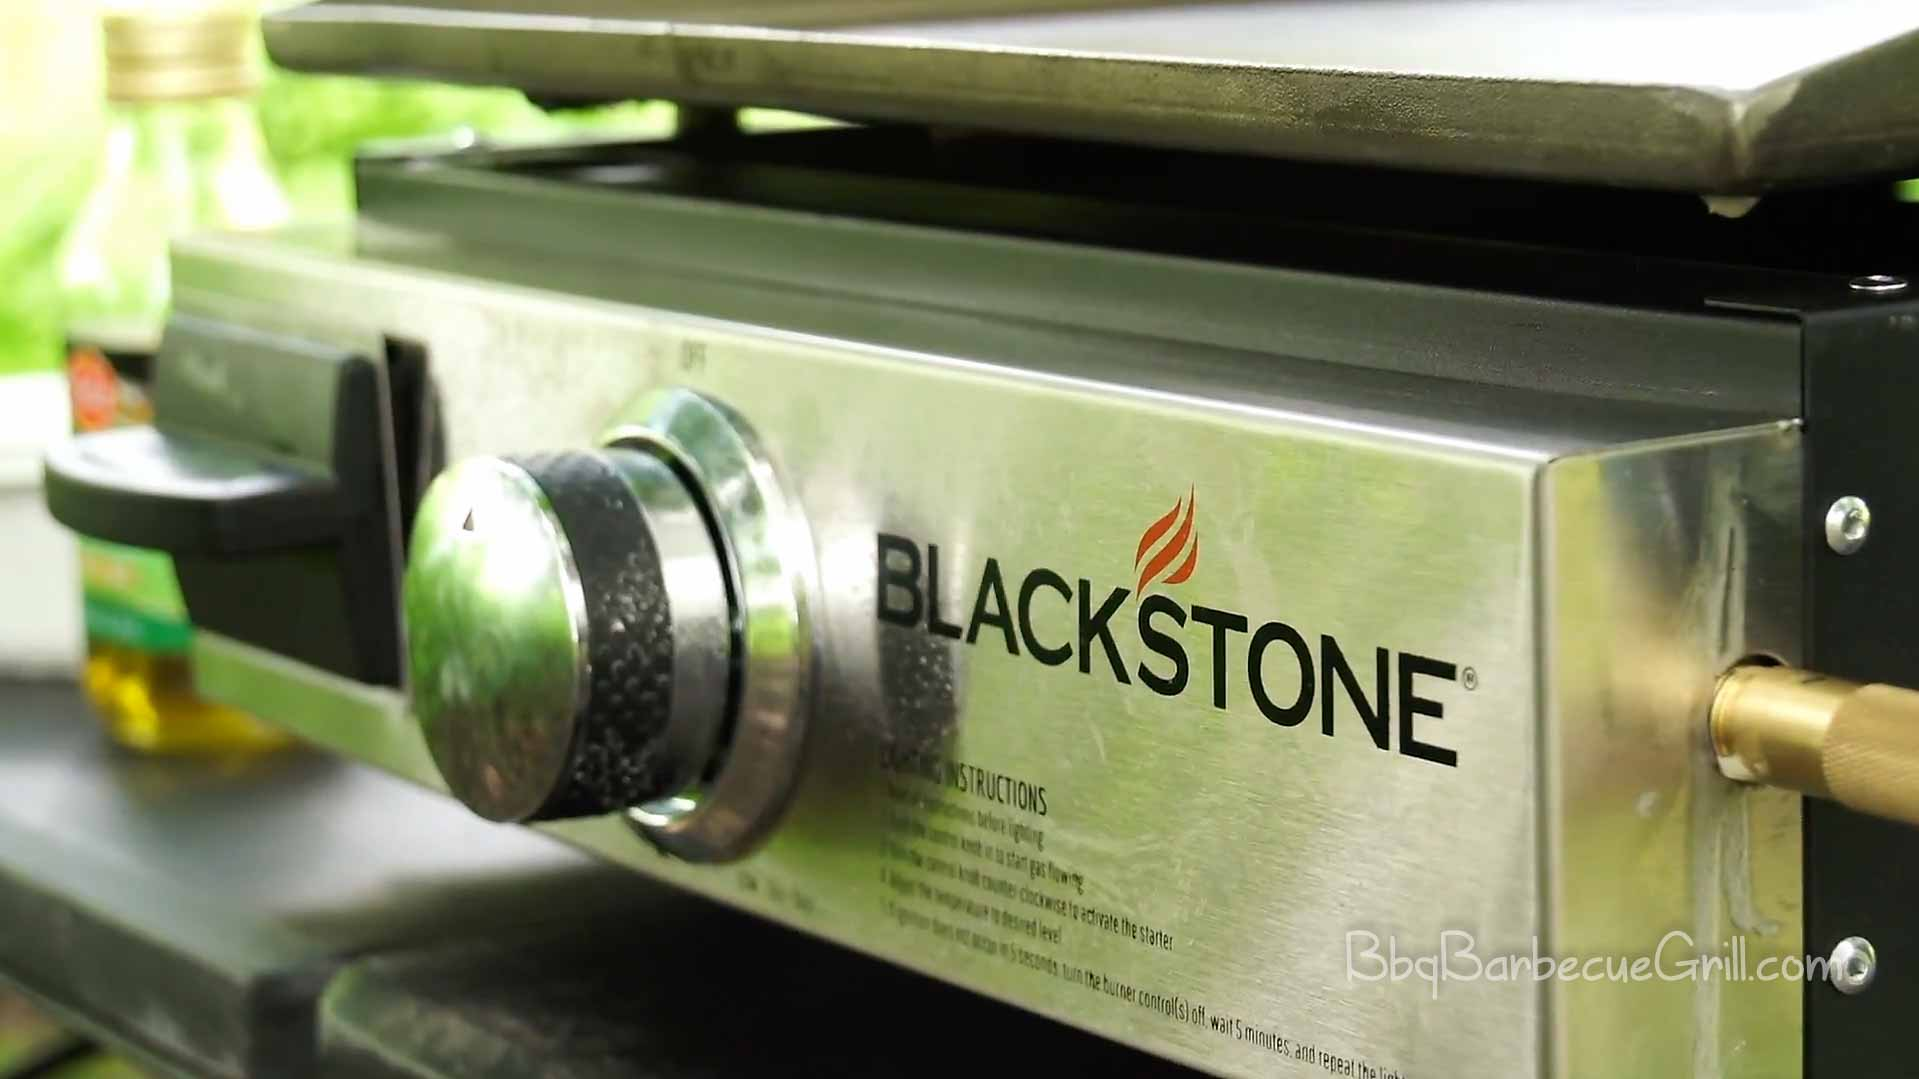 Blackstone griddle 17 vs 22